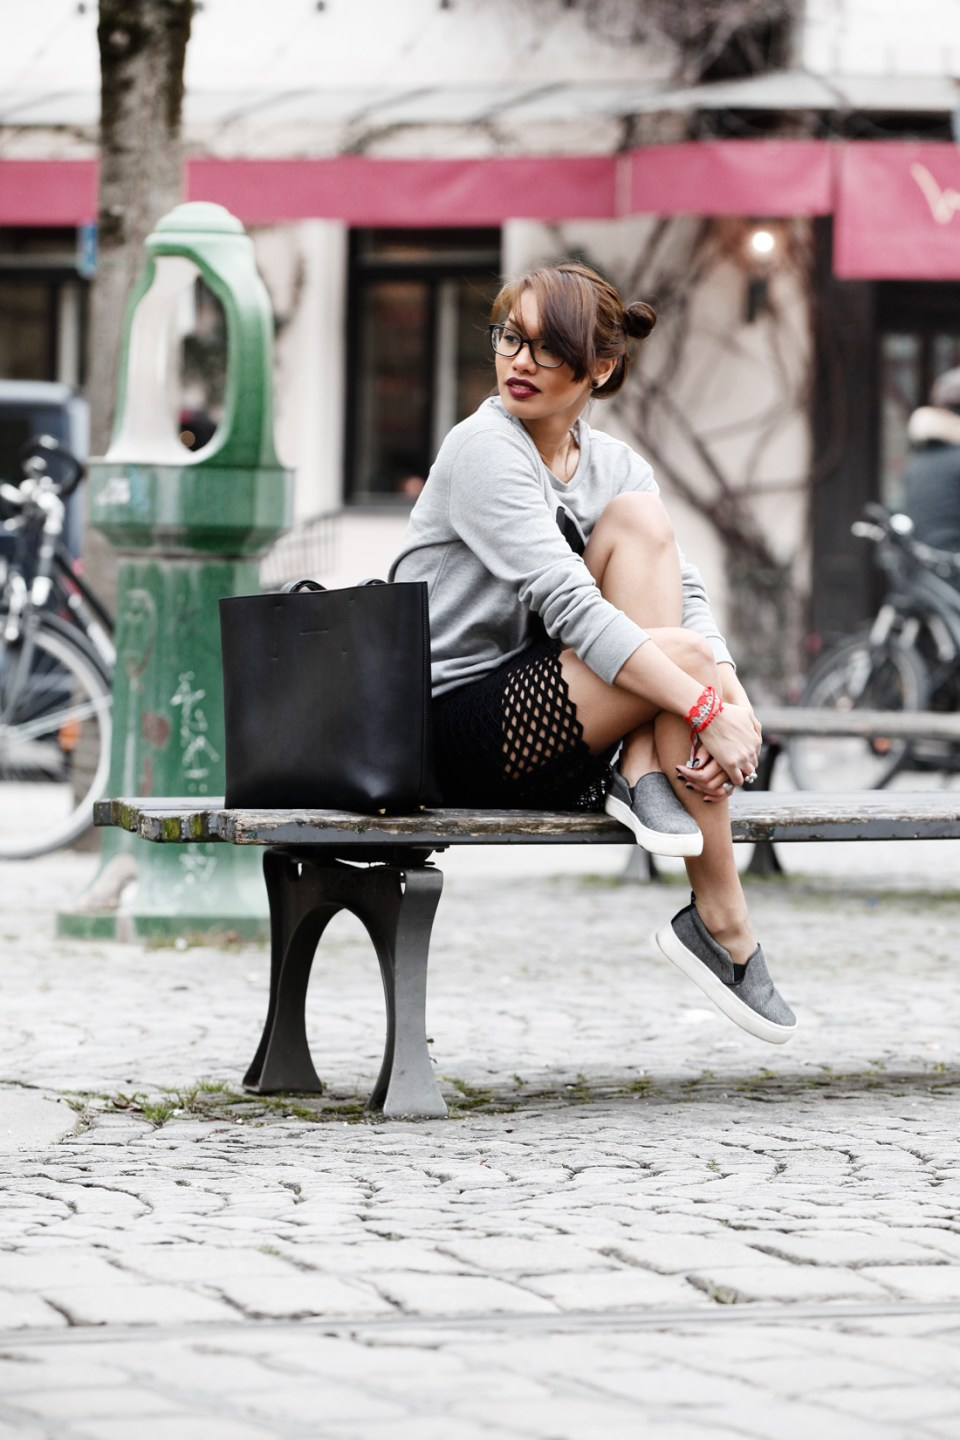 DIANABUENGER-MODEBLOG-FASHIONBLOG-STYLEBLOG-QUANTUMCOURAGE-SPONSORED-ZARA-OUTFITPOST-LOOK-SKIRT-CUTOUT-STREETSTYLE-BLOGGER-MUNICH-MUENCHEN-FASHIONBLOGGER-6